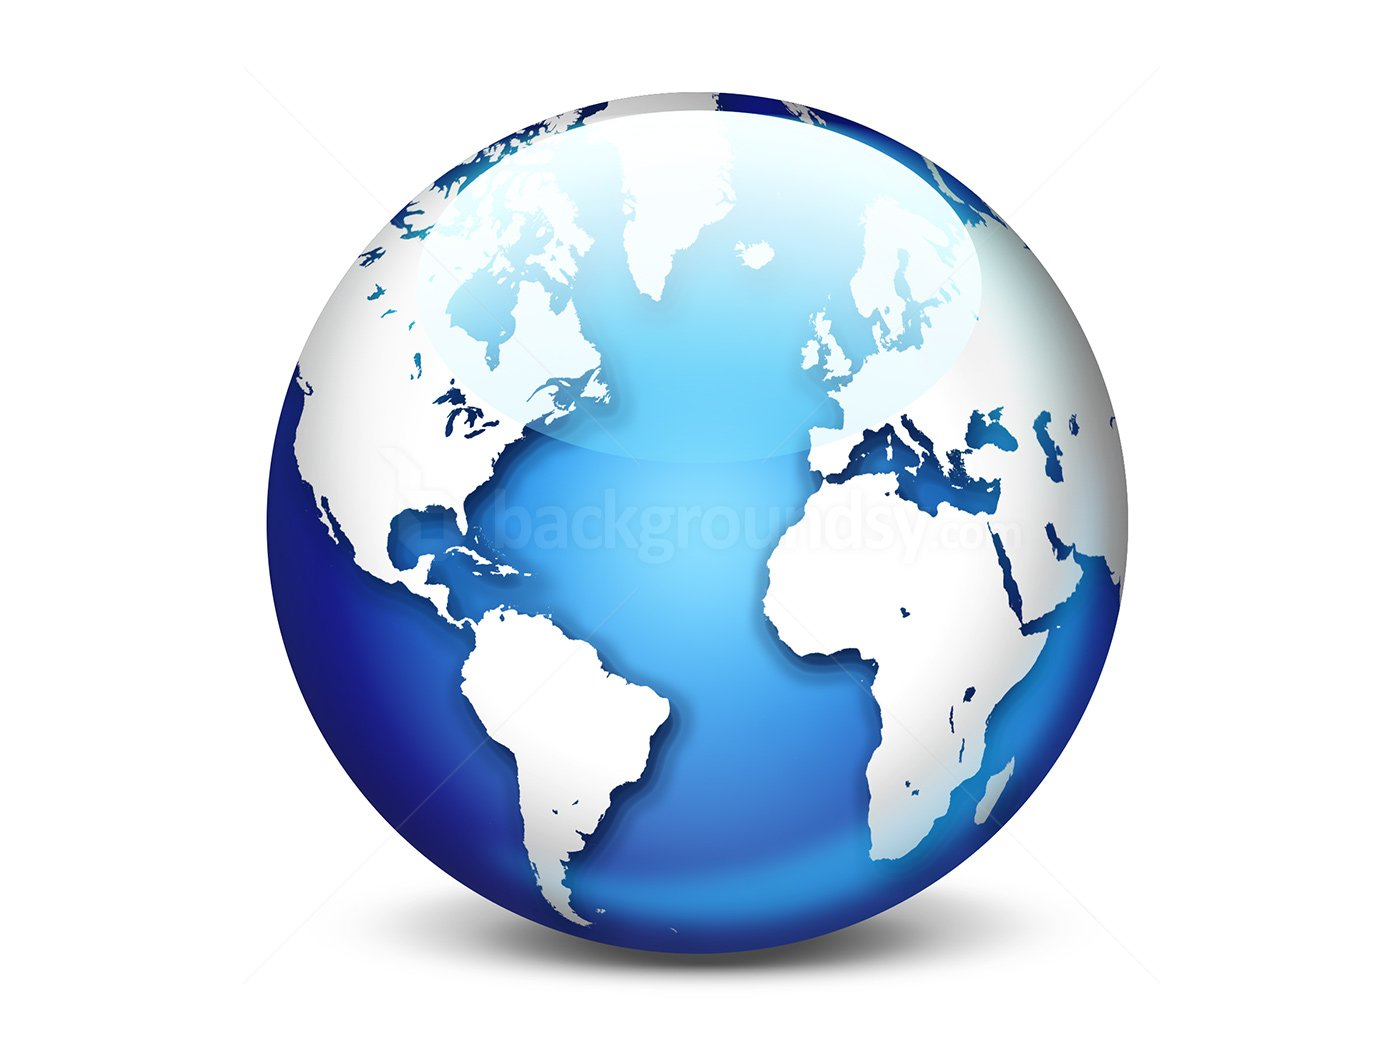 Http Www Wallpapersafari Com World Globe Wallpaper